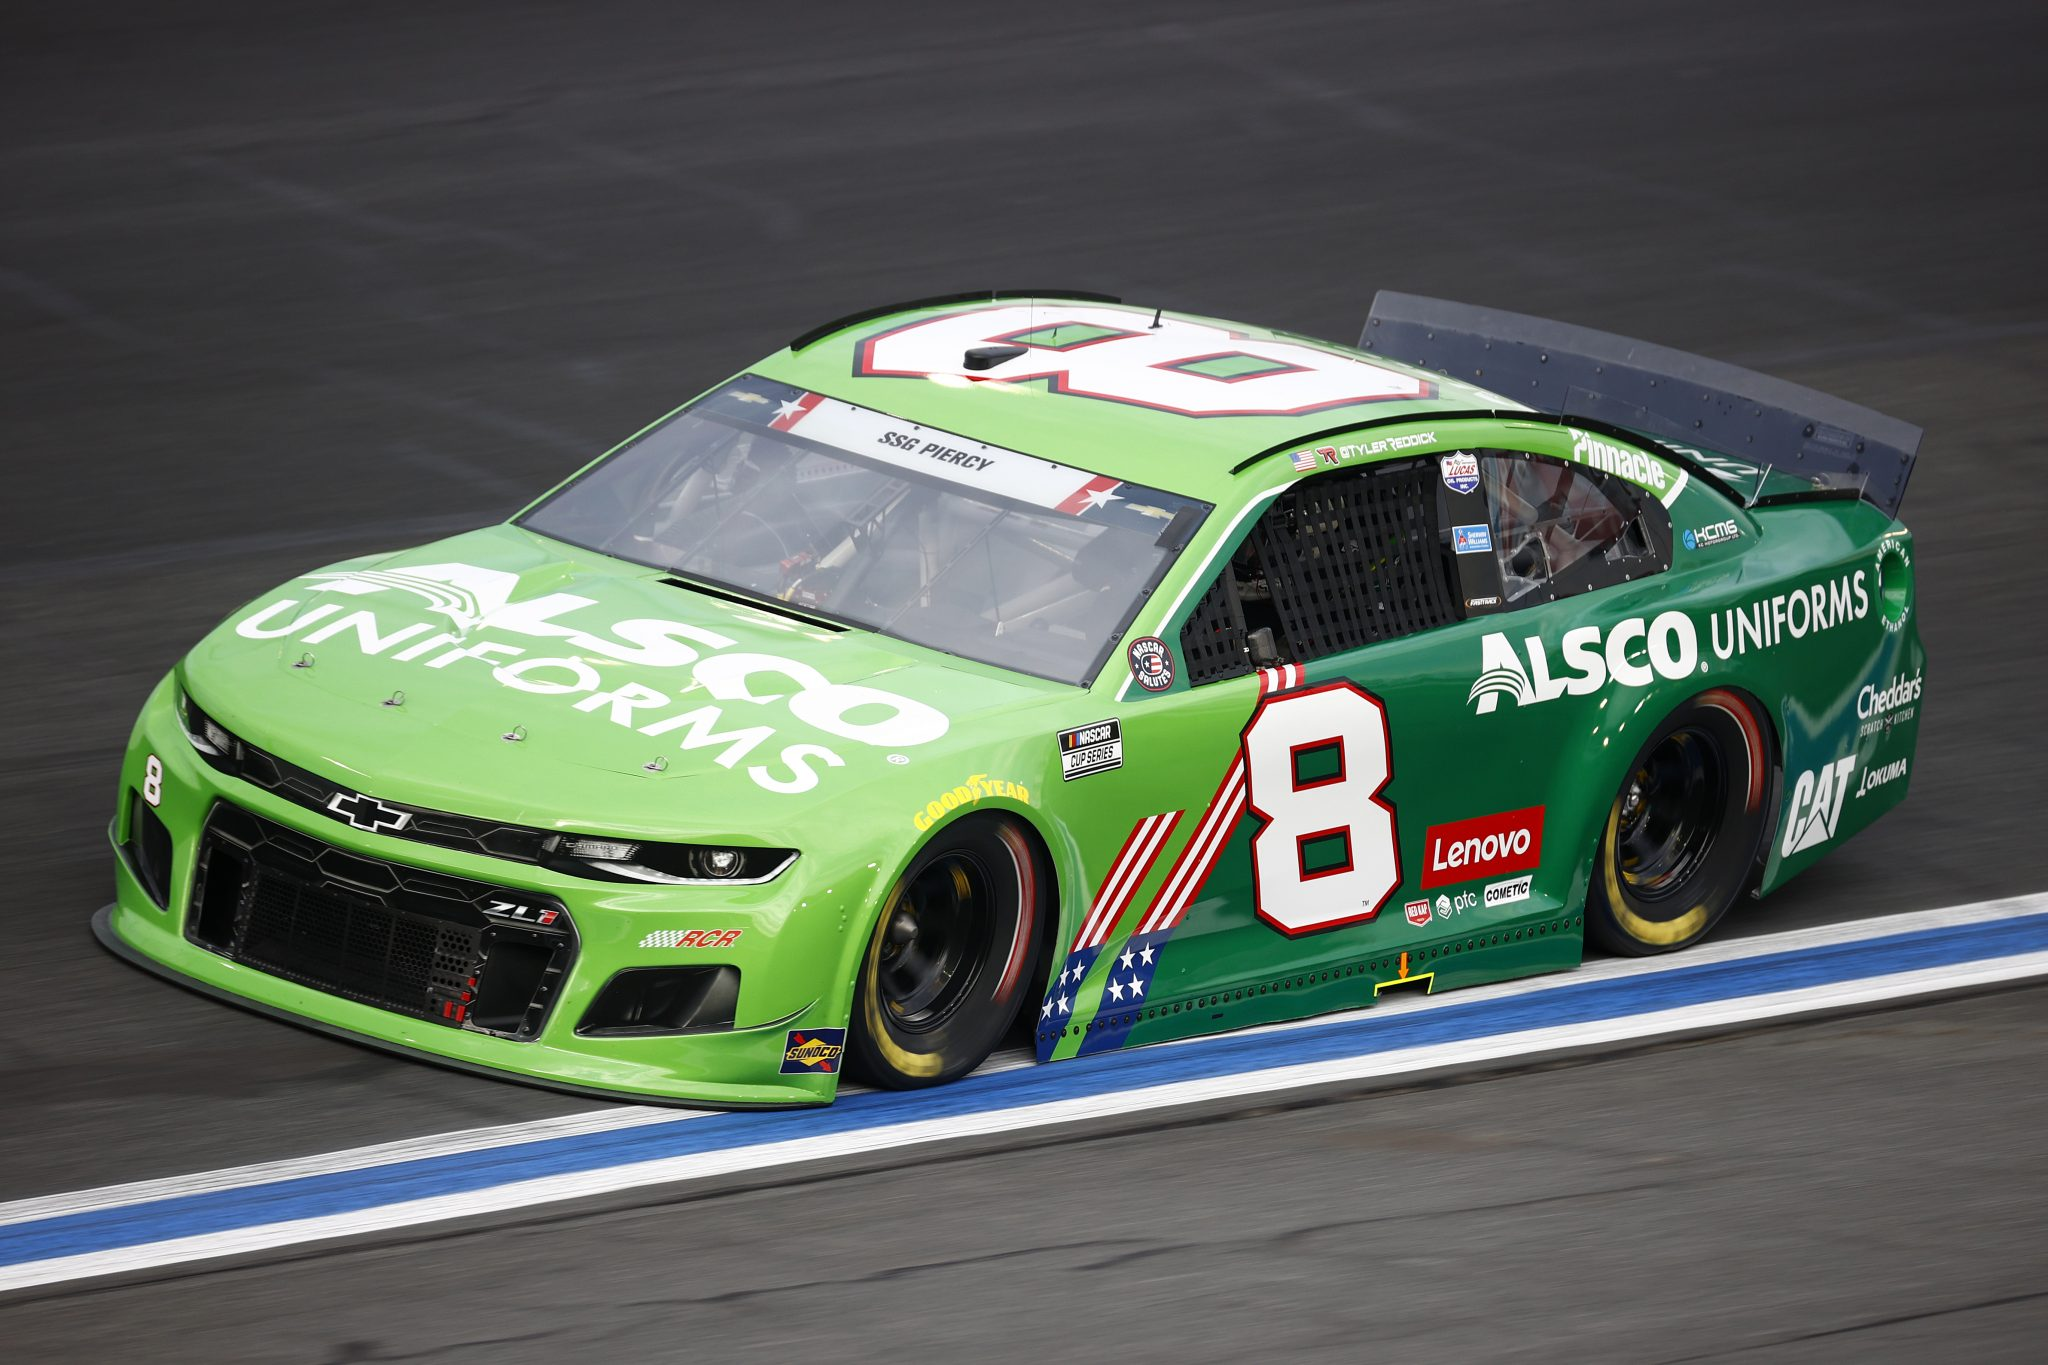 CONCORD, NORTH CAROLINA - MAY 28: Tyler Reddick, driver of the #8 Alsco Uniforms Chevrolet, drives during practice for the NASCAR Cup Series Coca-Cola 600 at Charlotte Motor Speedway on May 28, 2021 in Concord, North Carolina. (Photo by Jared C. Tilton/Getty Images) | Getty Images